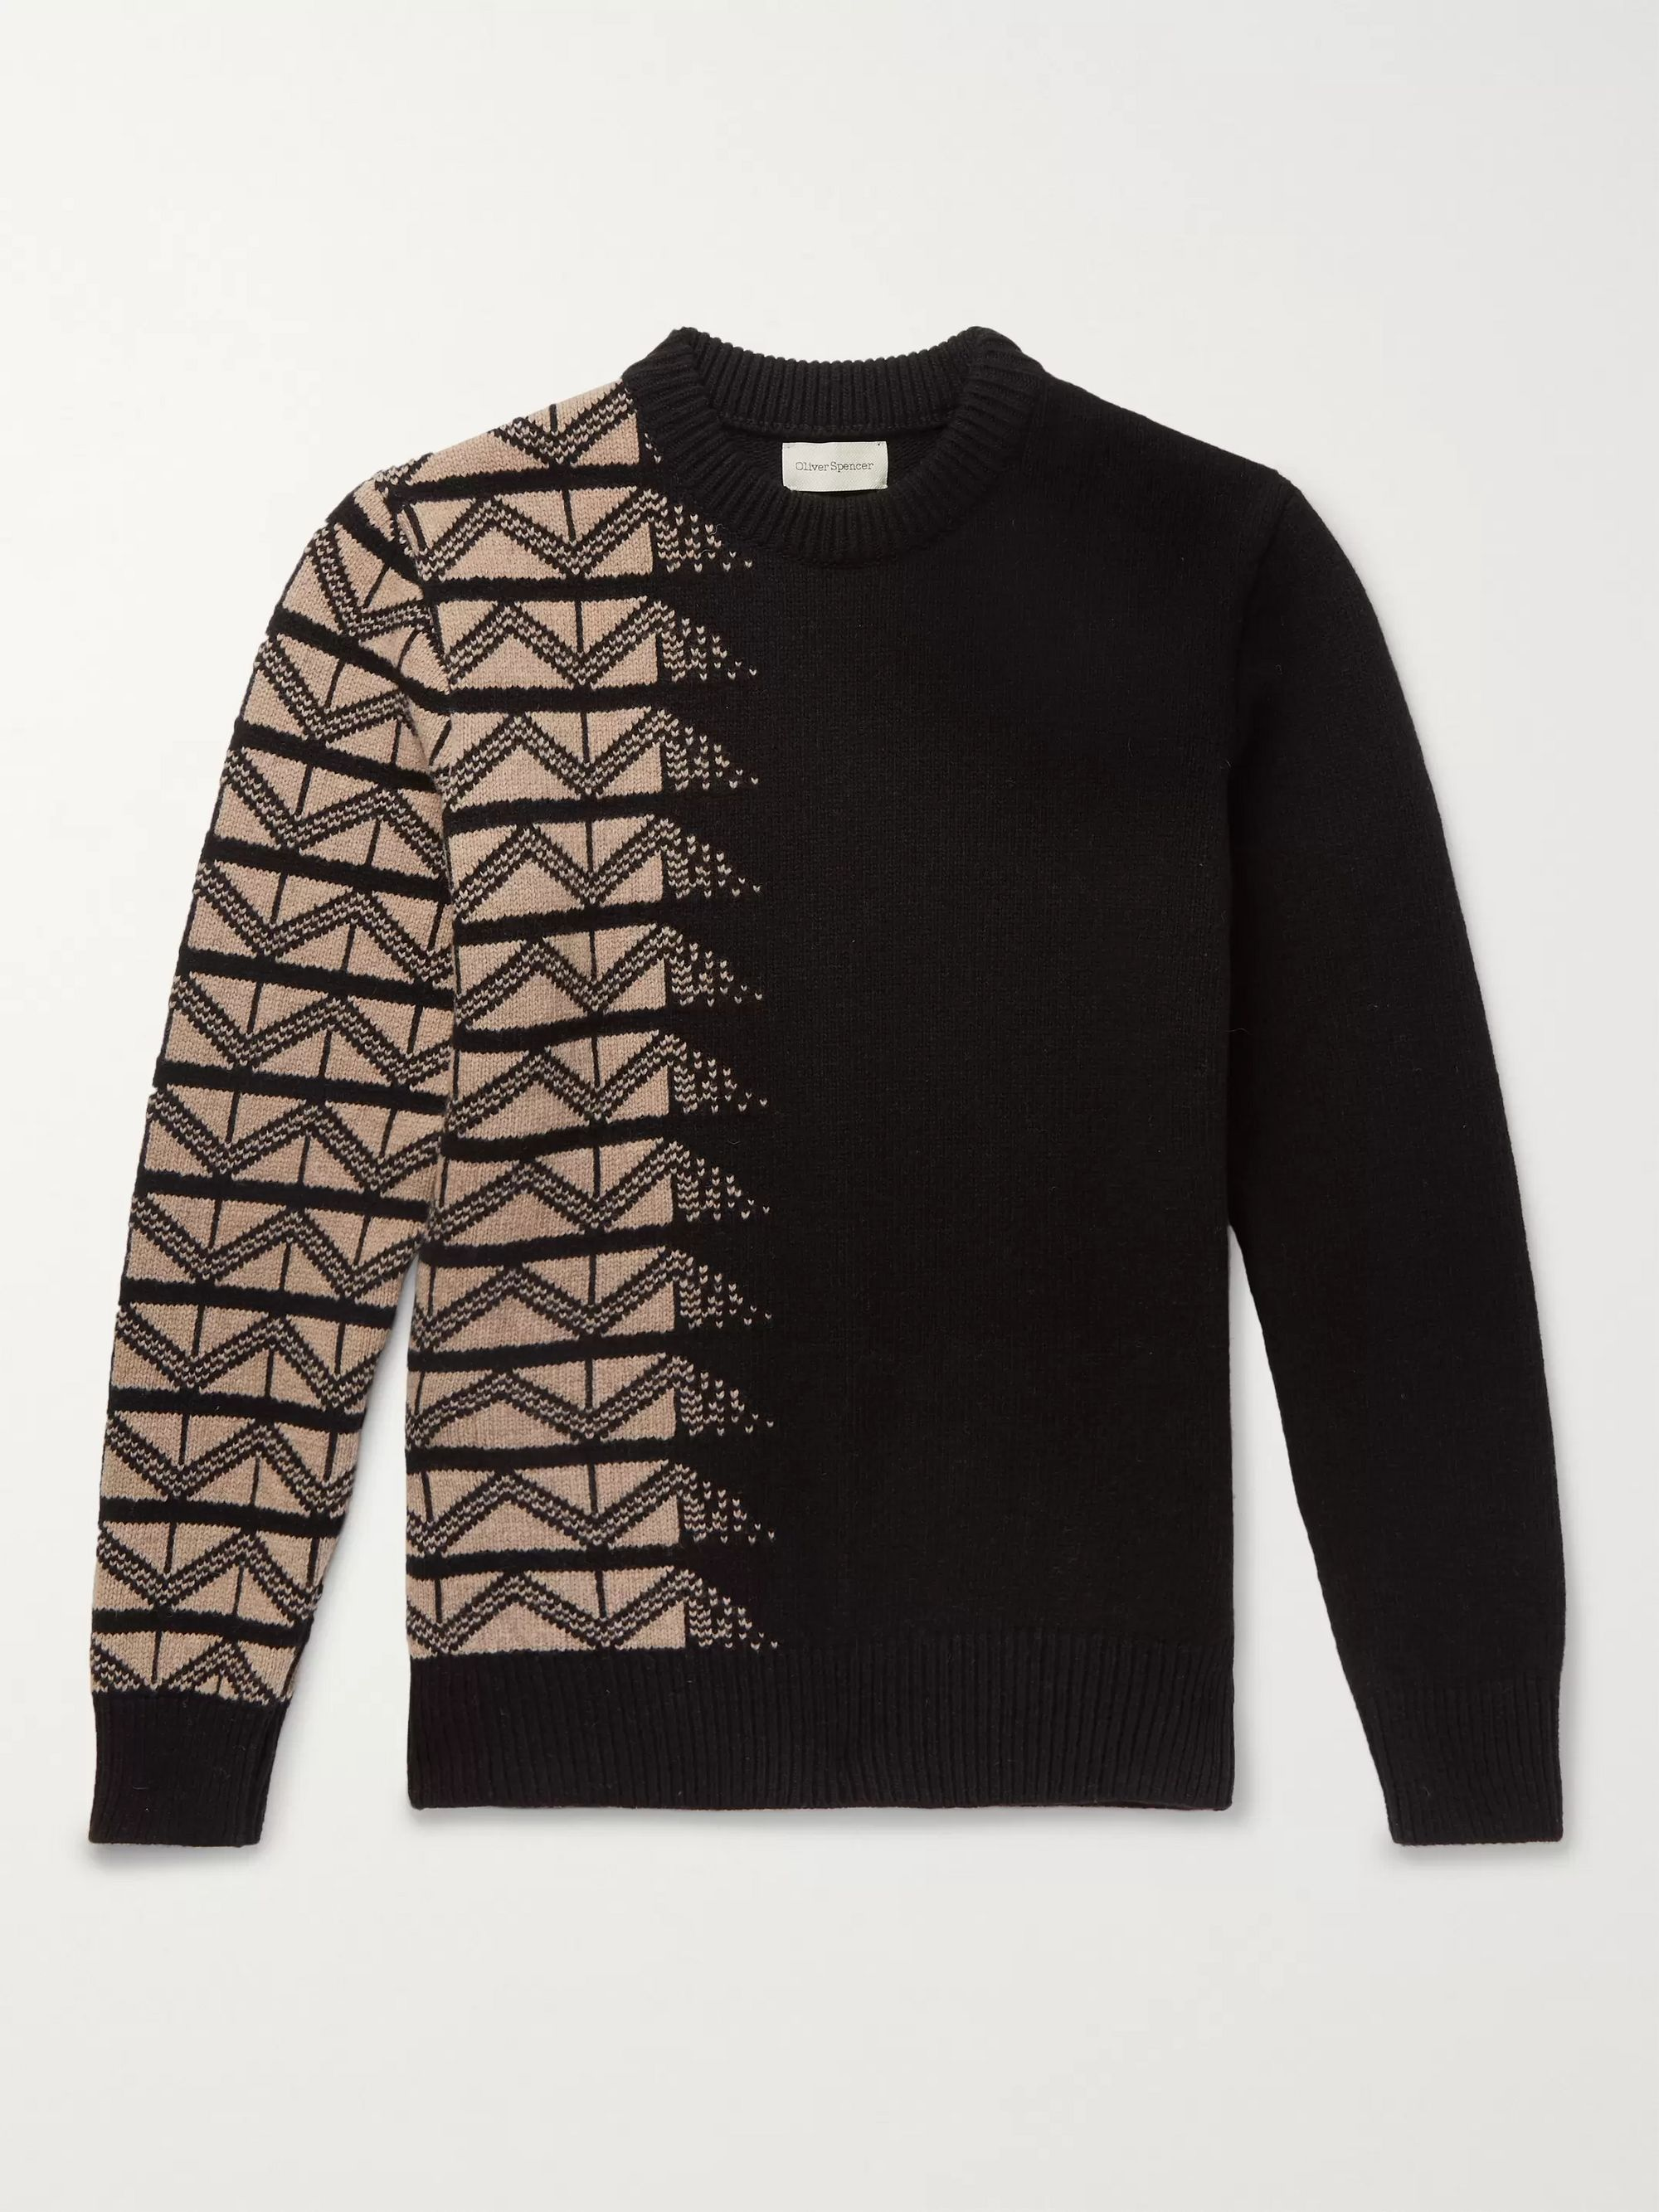 Wool Jacquard Sweater by Oliver Spencer